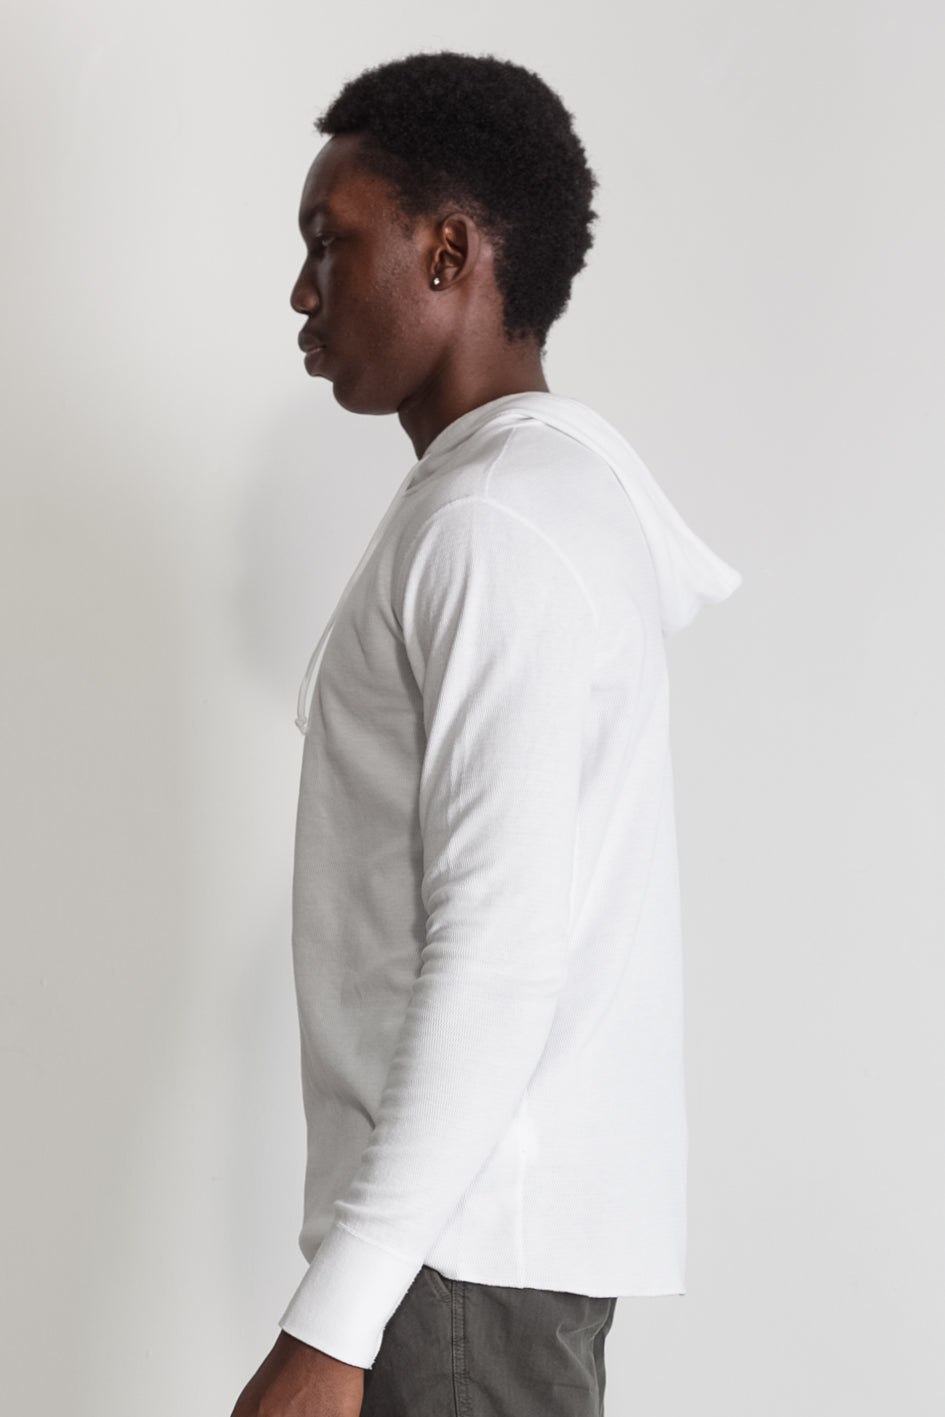 Mesh Thermal Pullover Hoodie in White NS2155-4